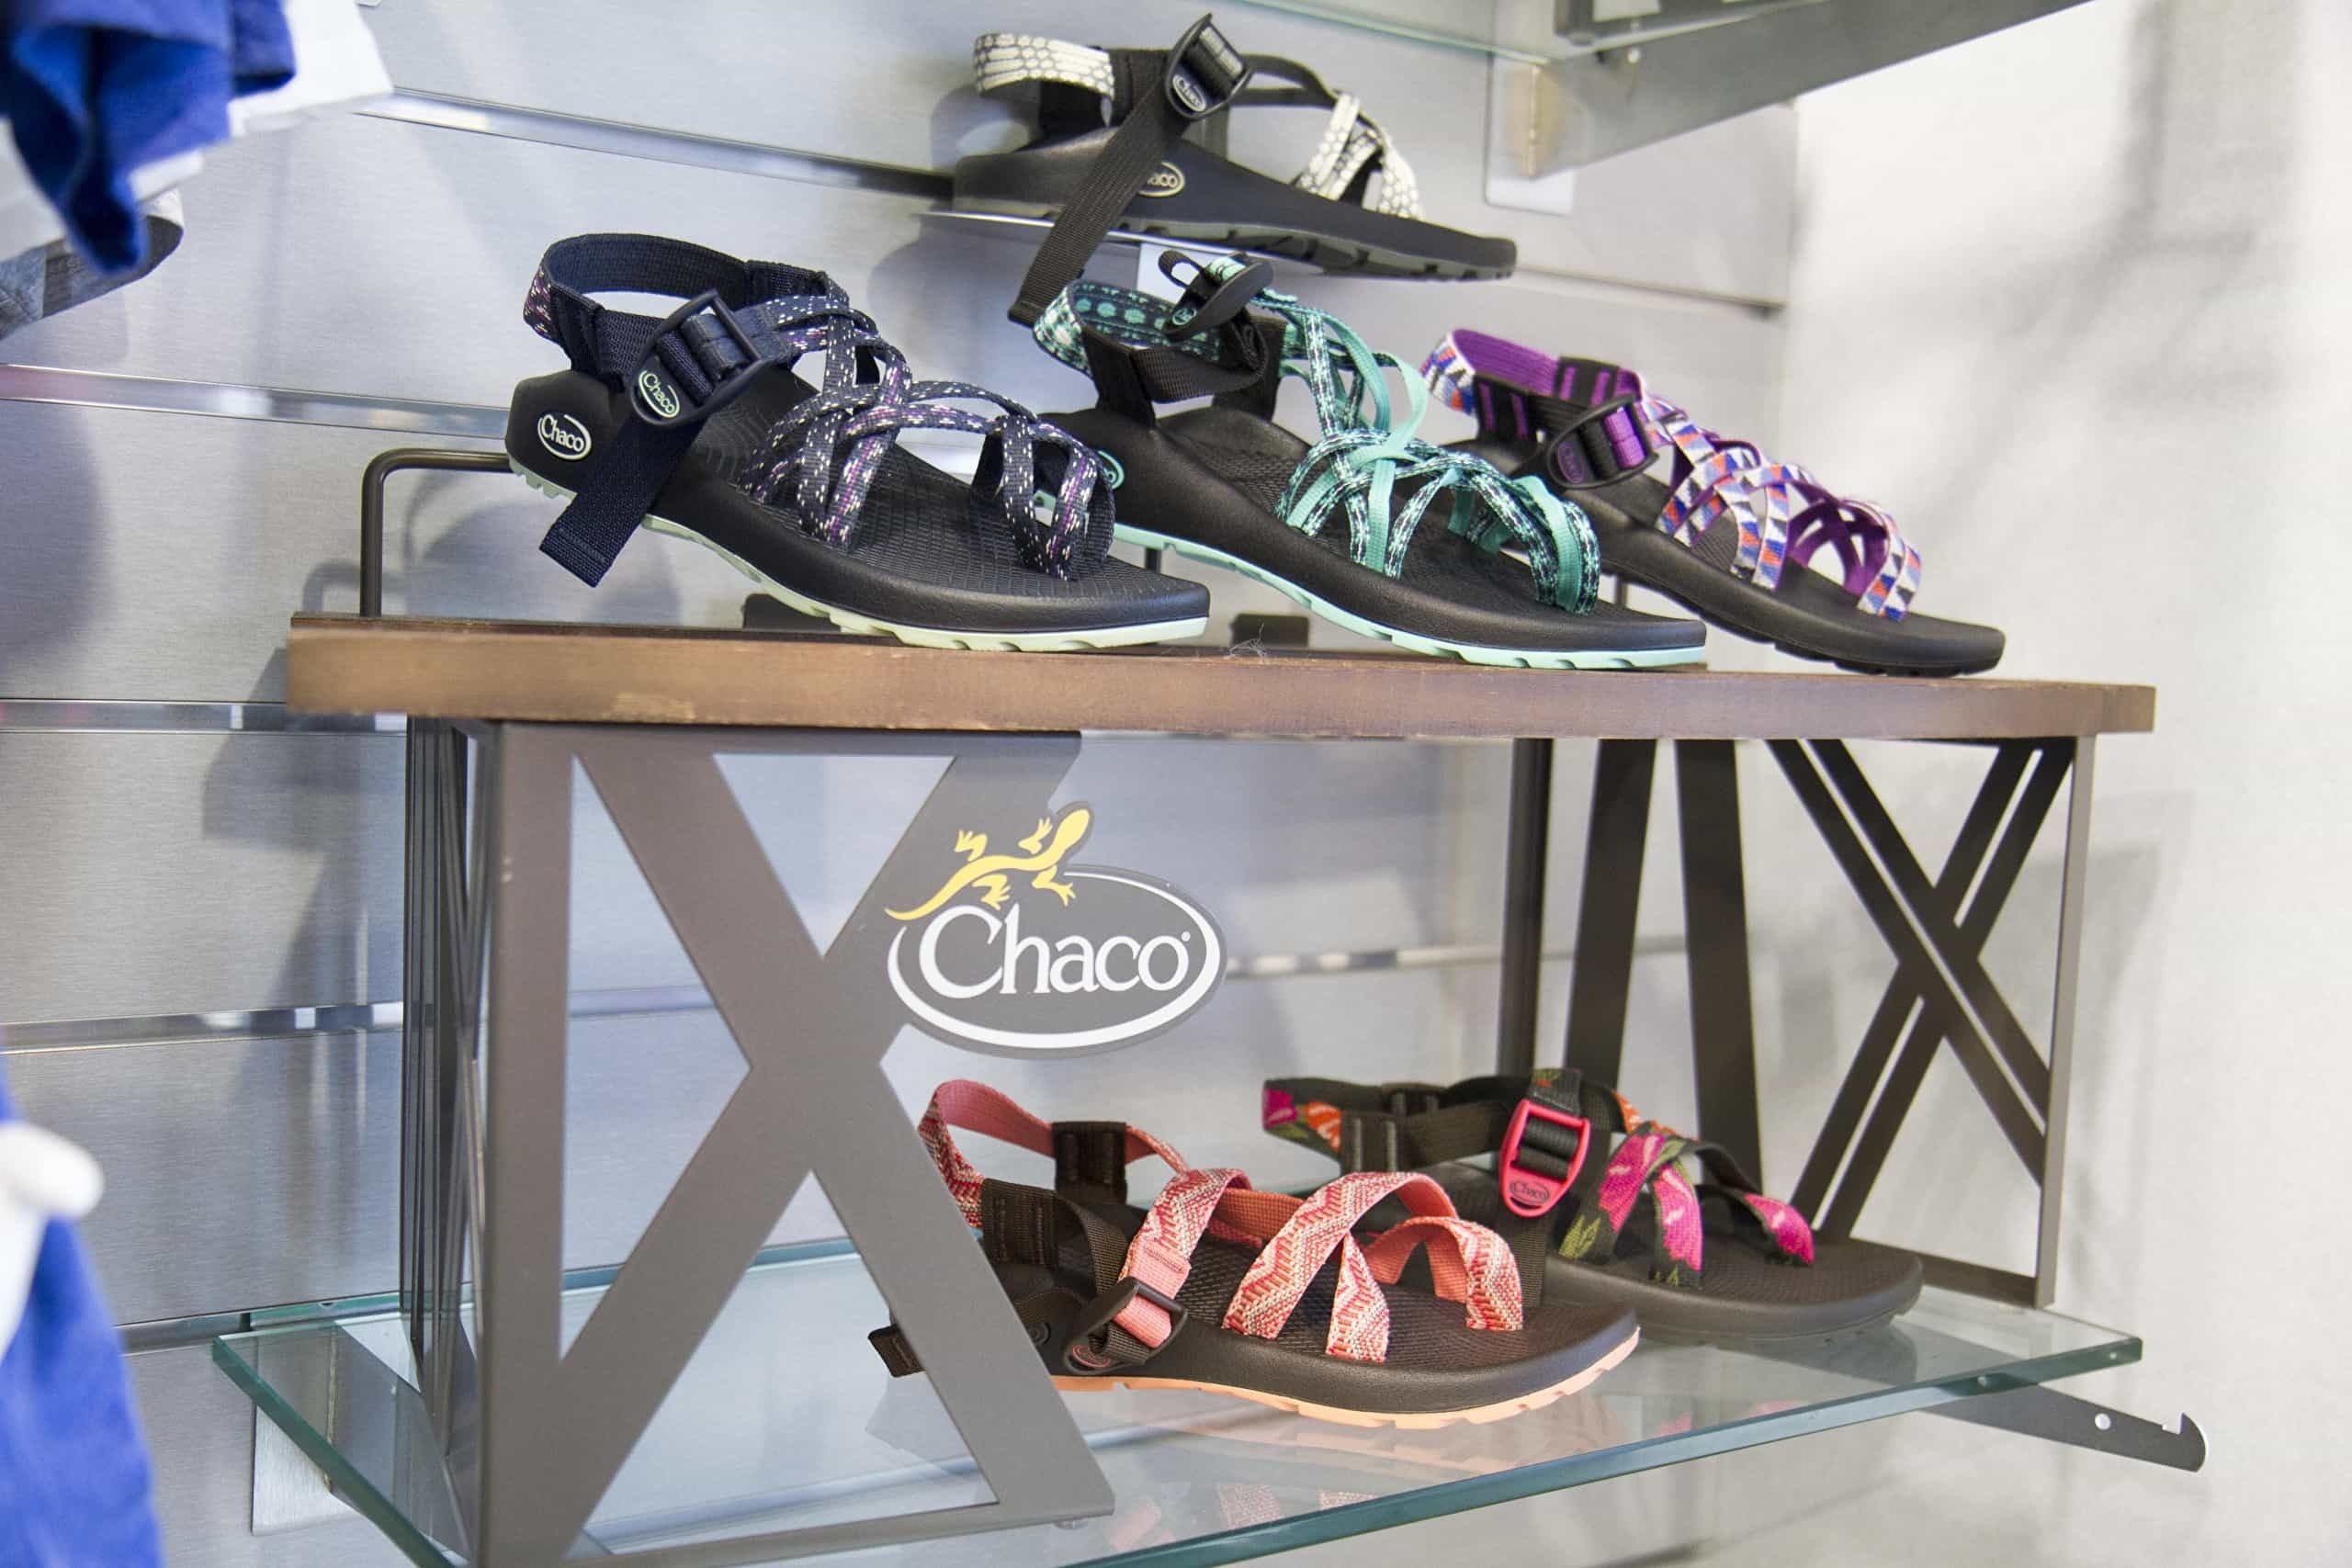 Chacos at Shoenique in Sulphur, Oklahoma